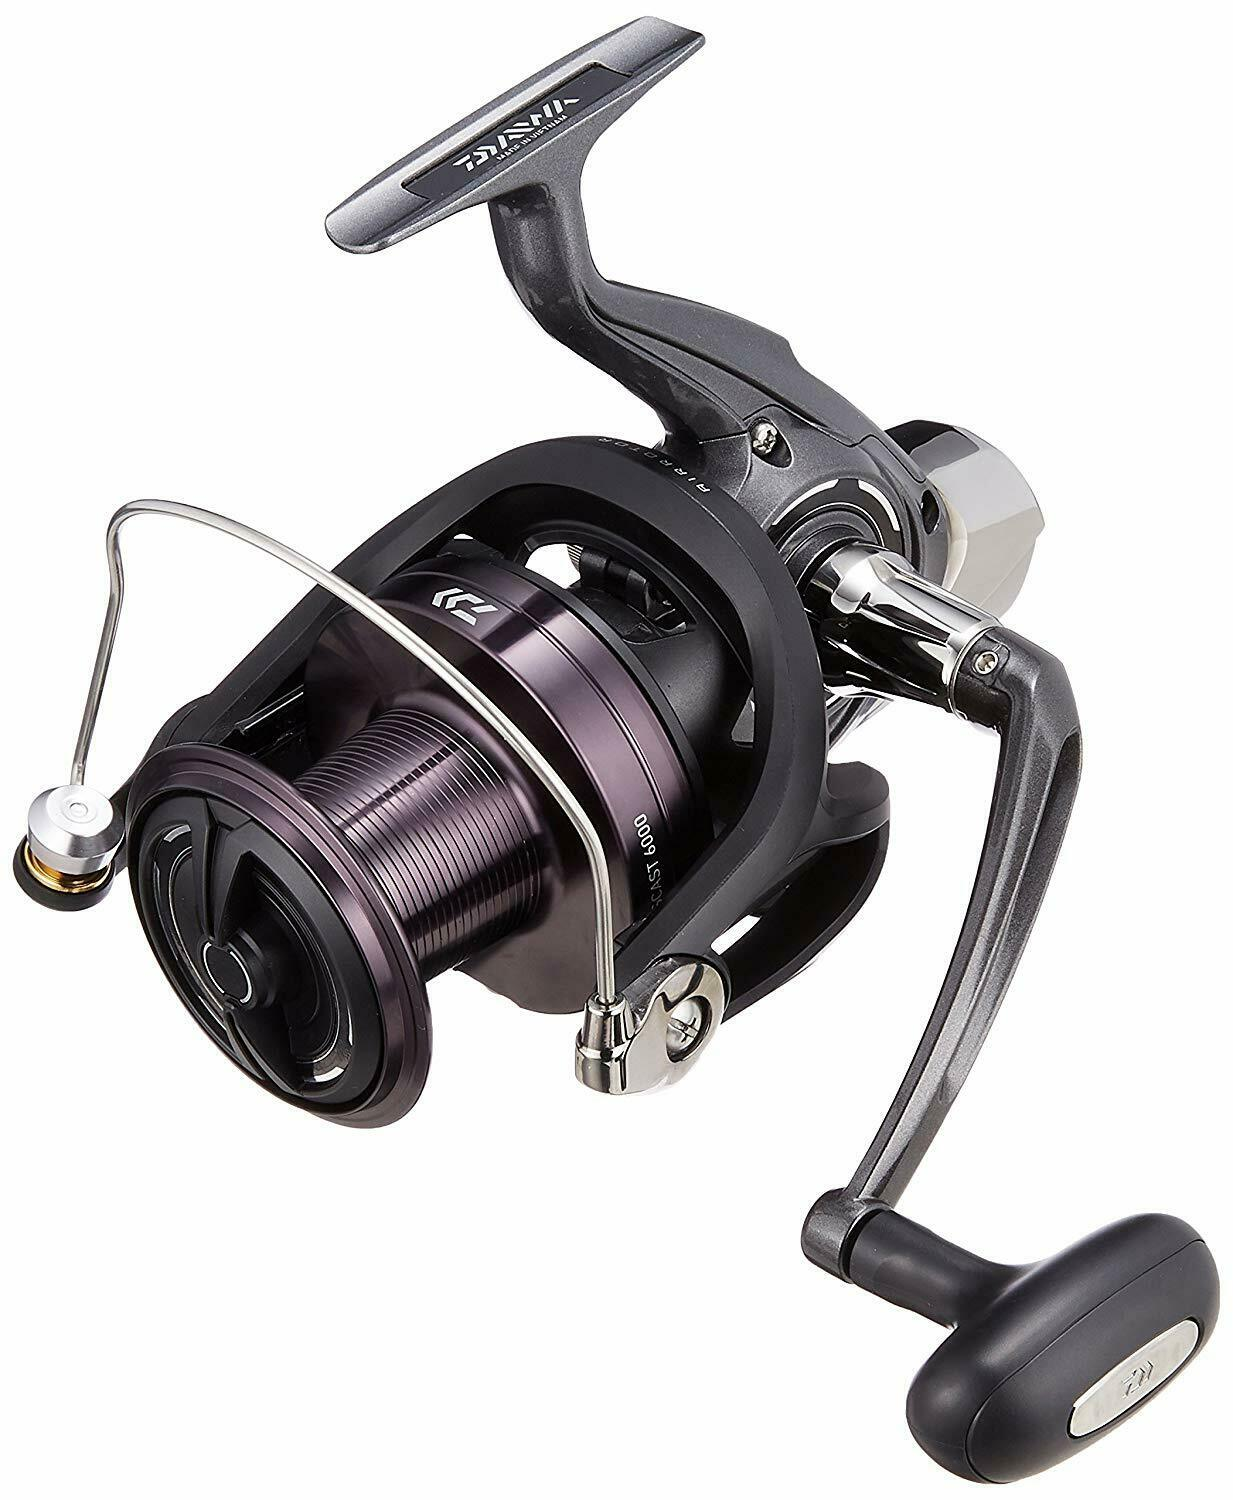 Daiwa Spinning Fishing Reels 17 CROSSCAST 6000 from japan Brand New in Box